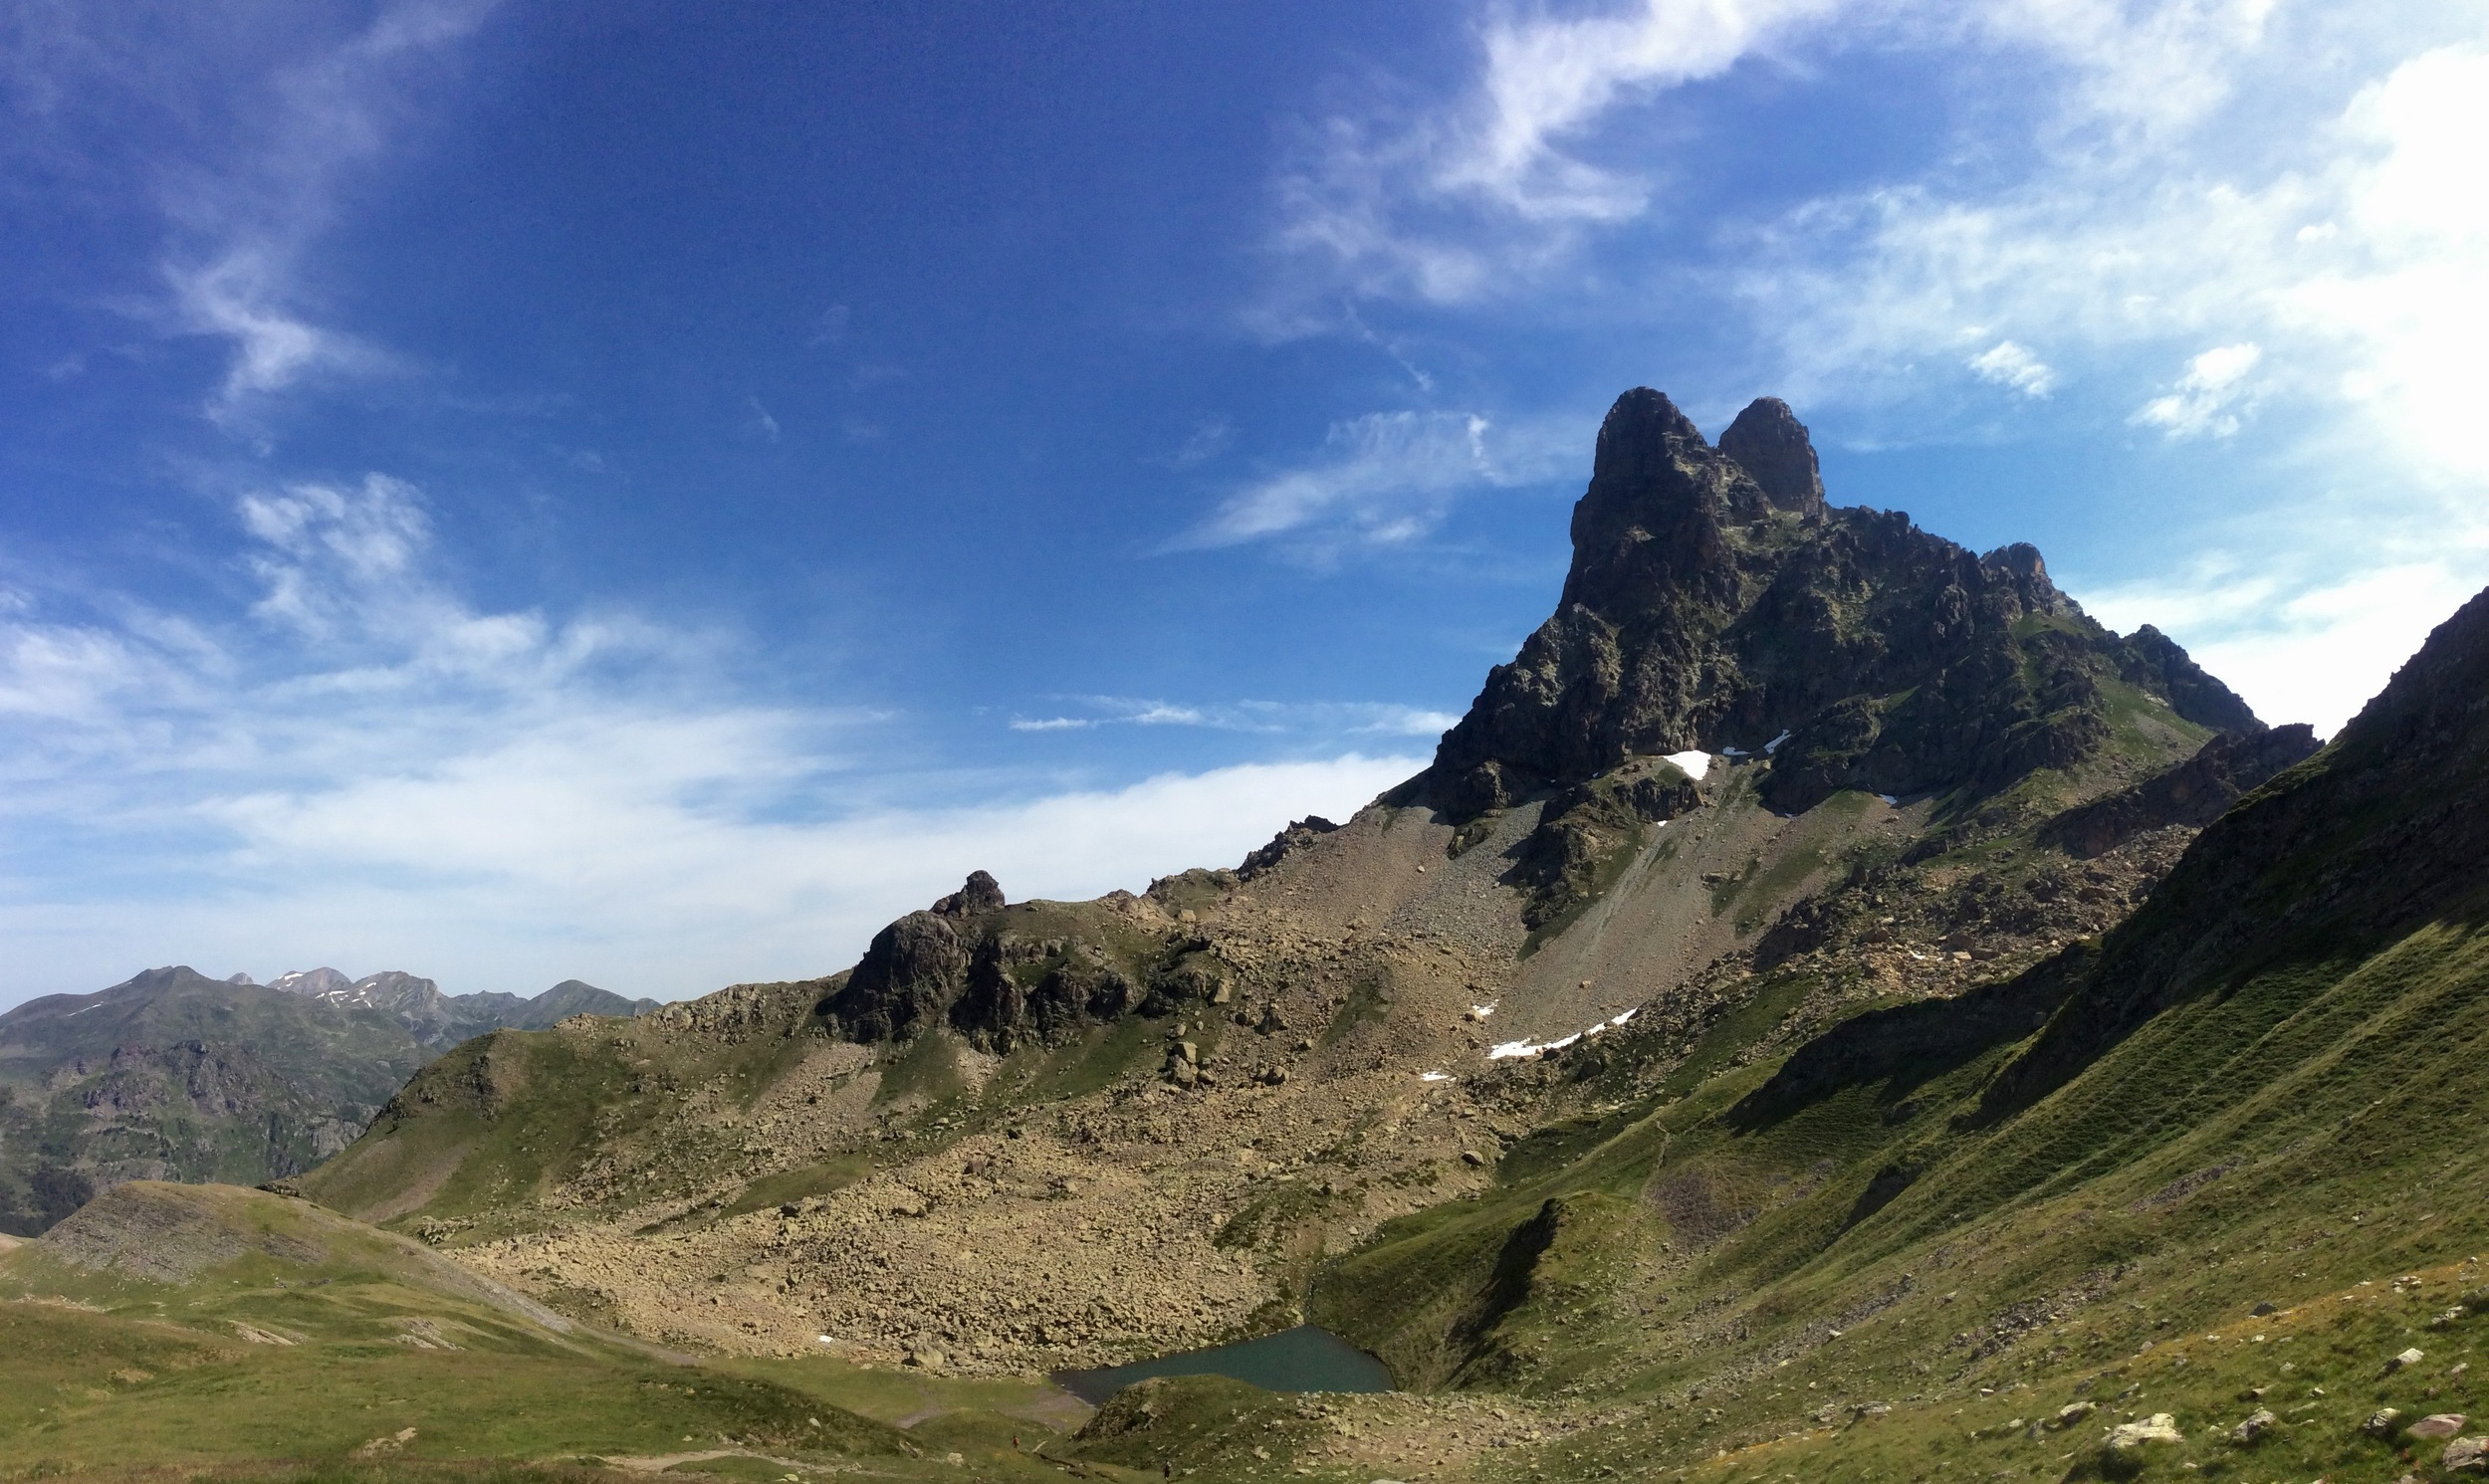 Pic du Midi d'Ossau, from south